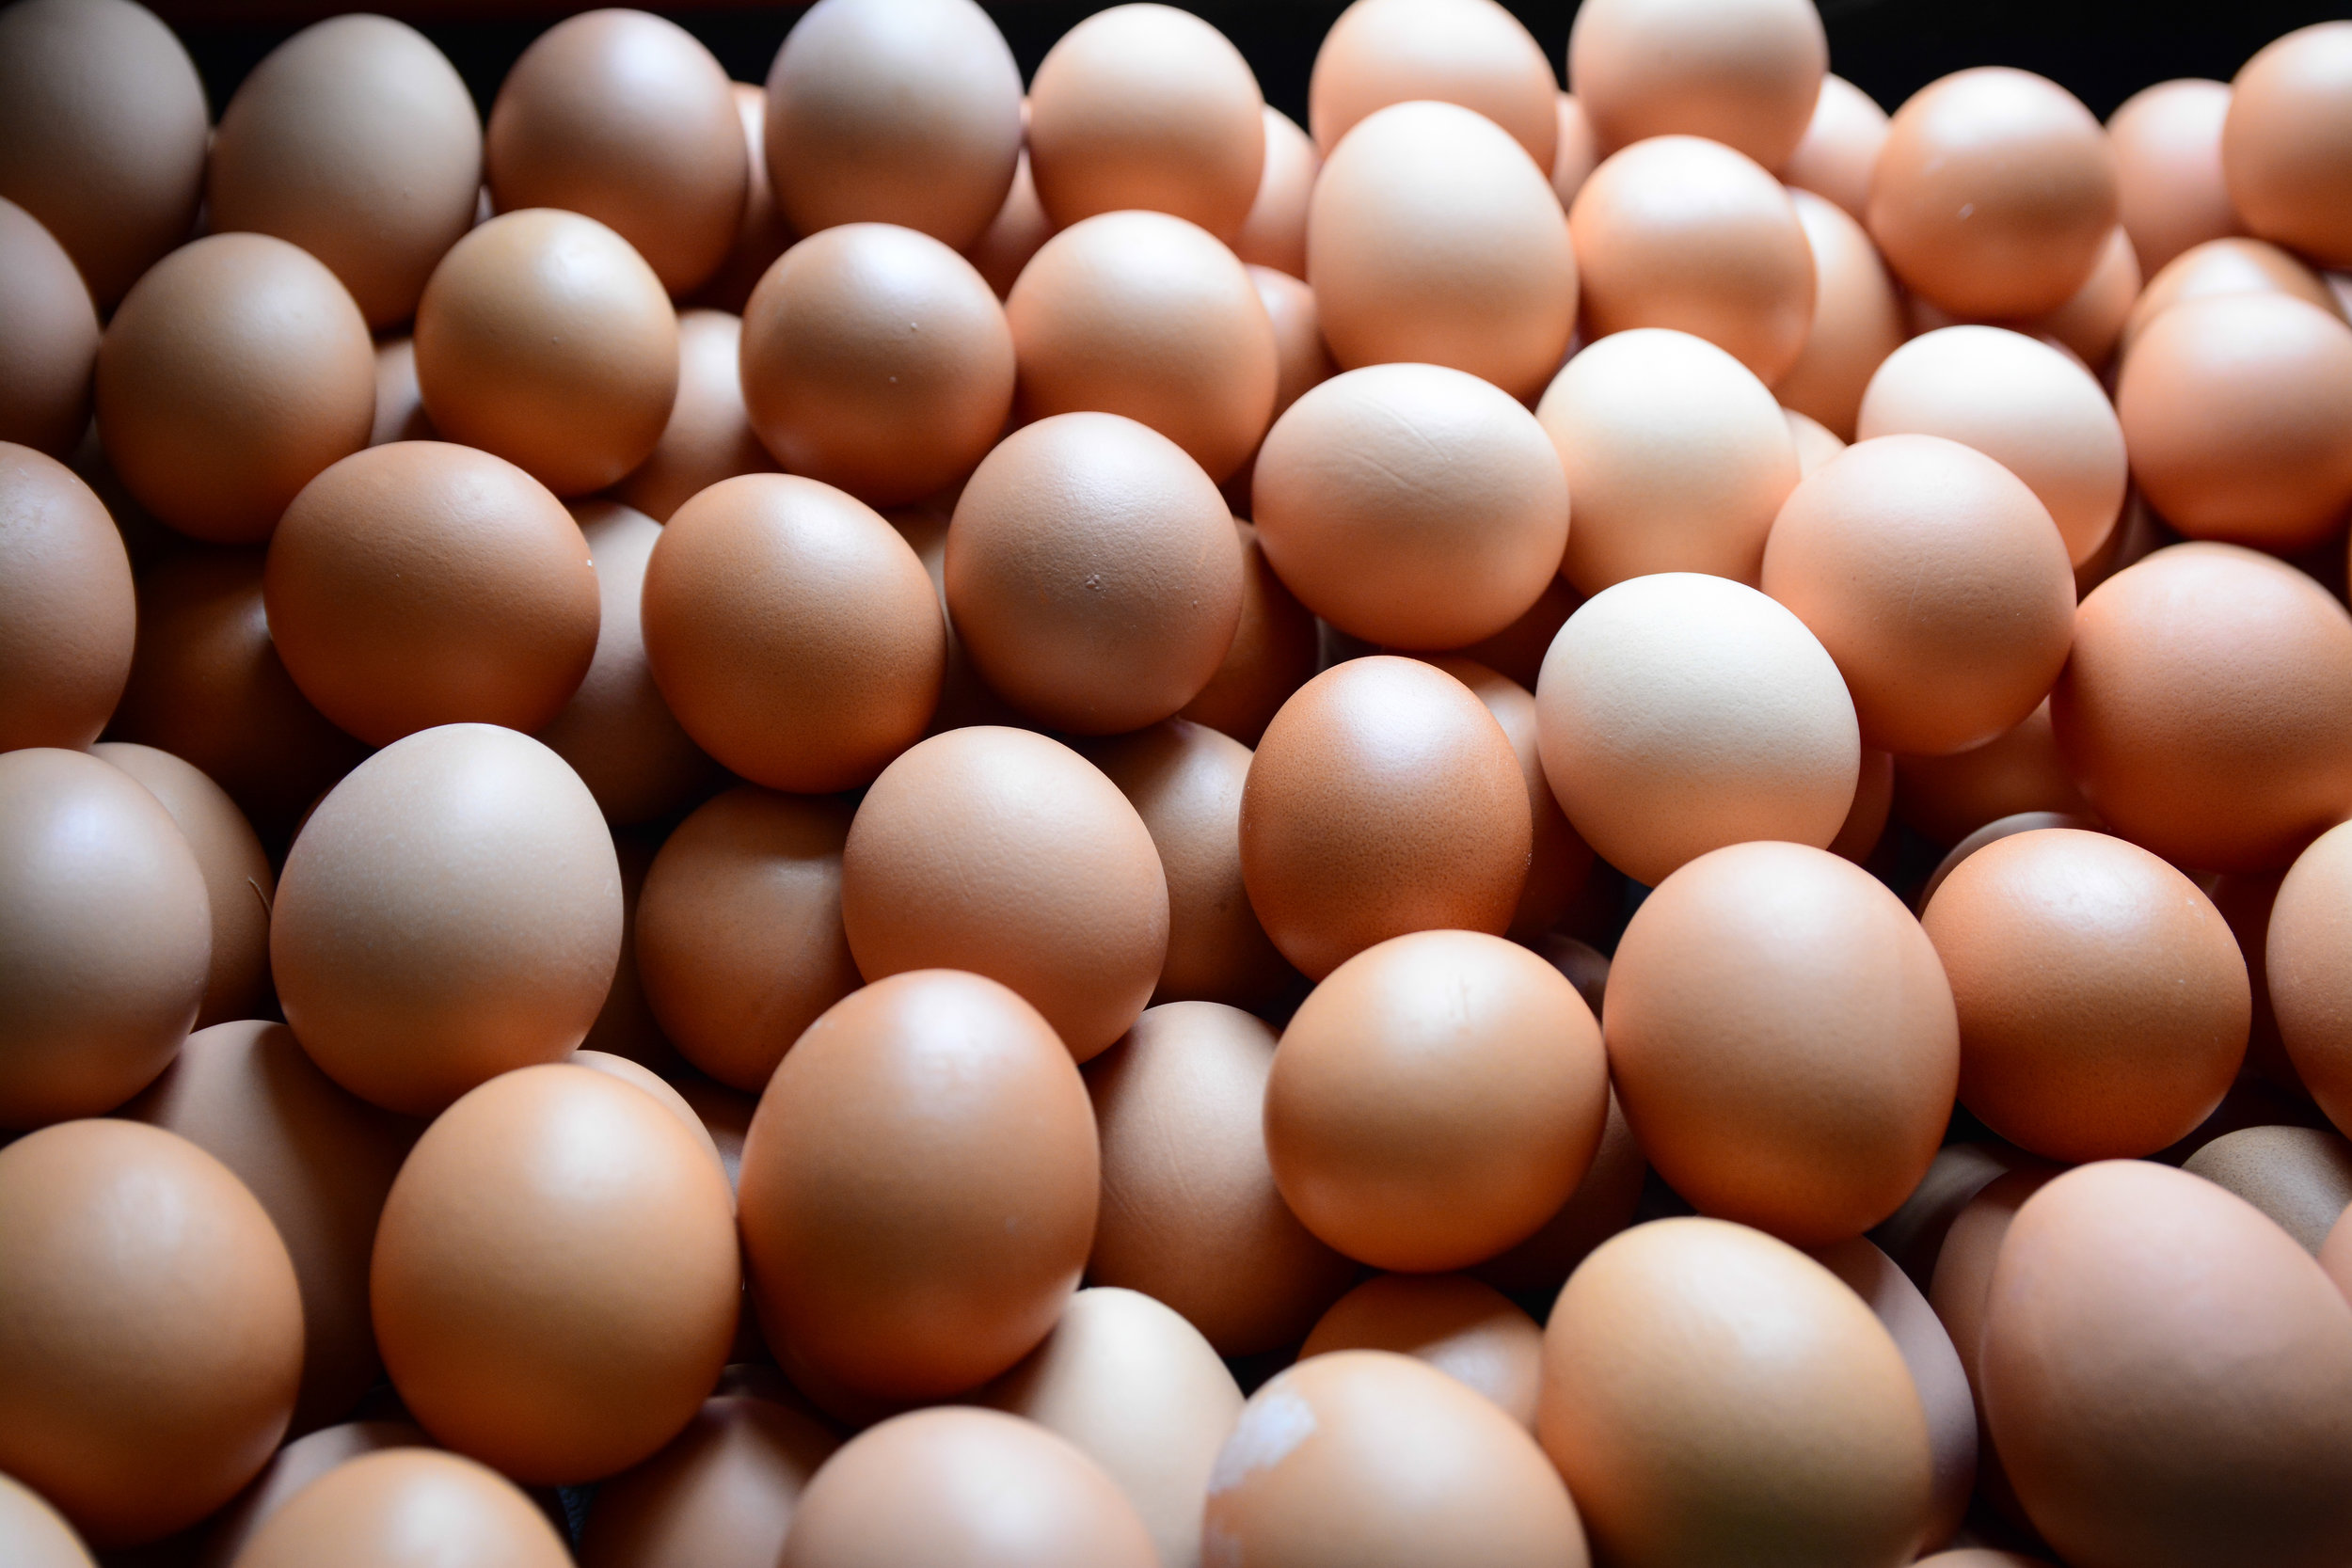 Eggs, ready to go in the carton